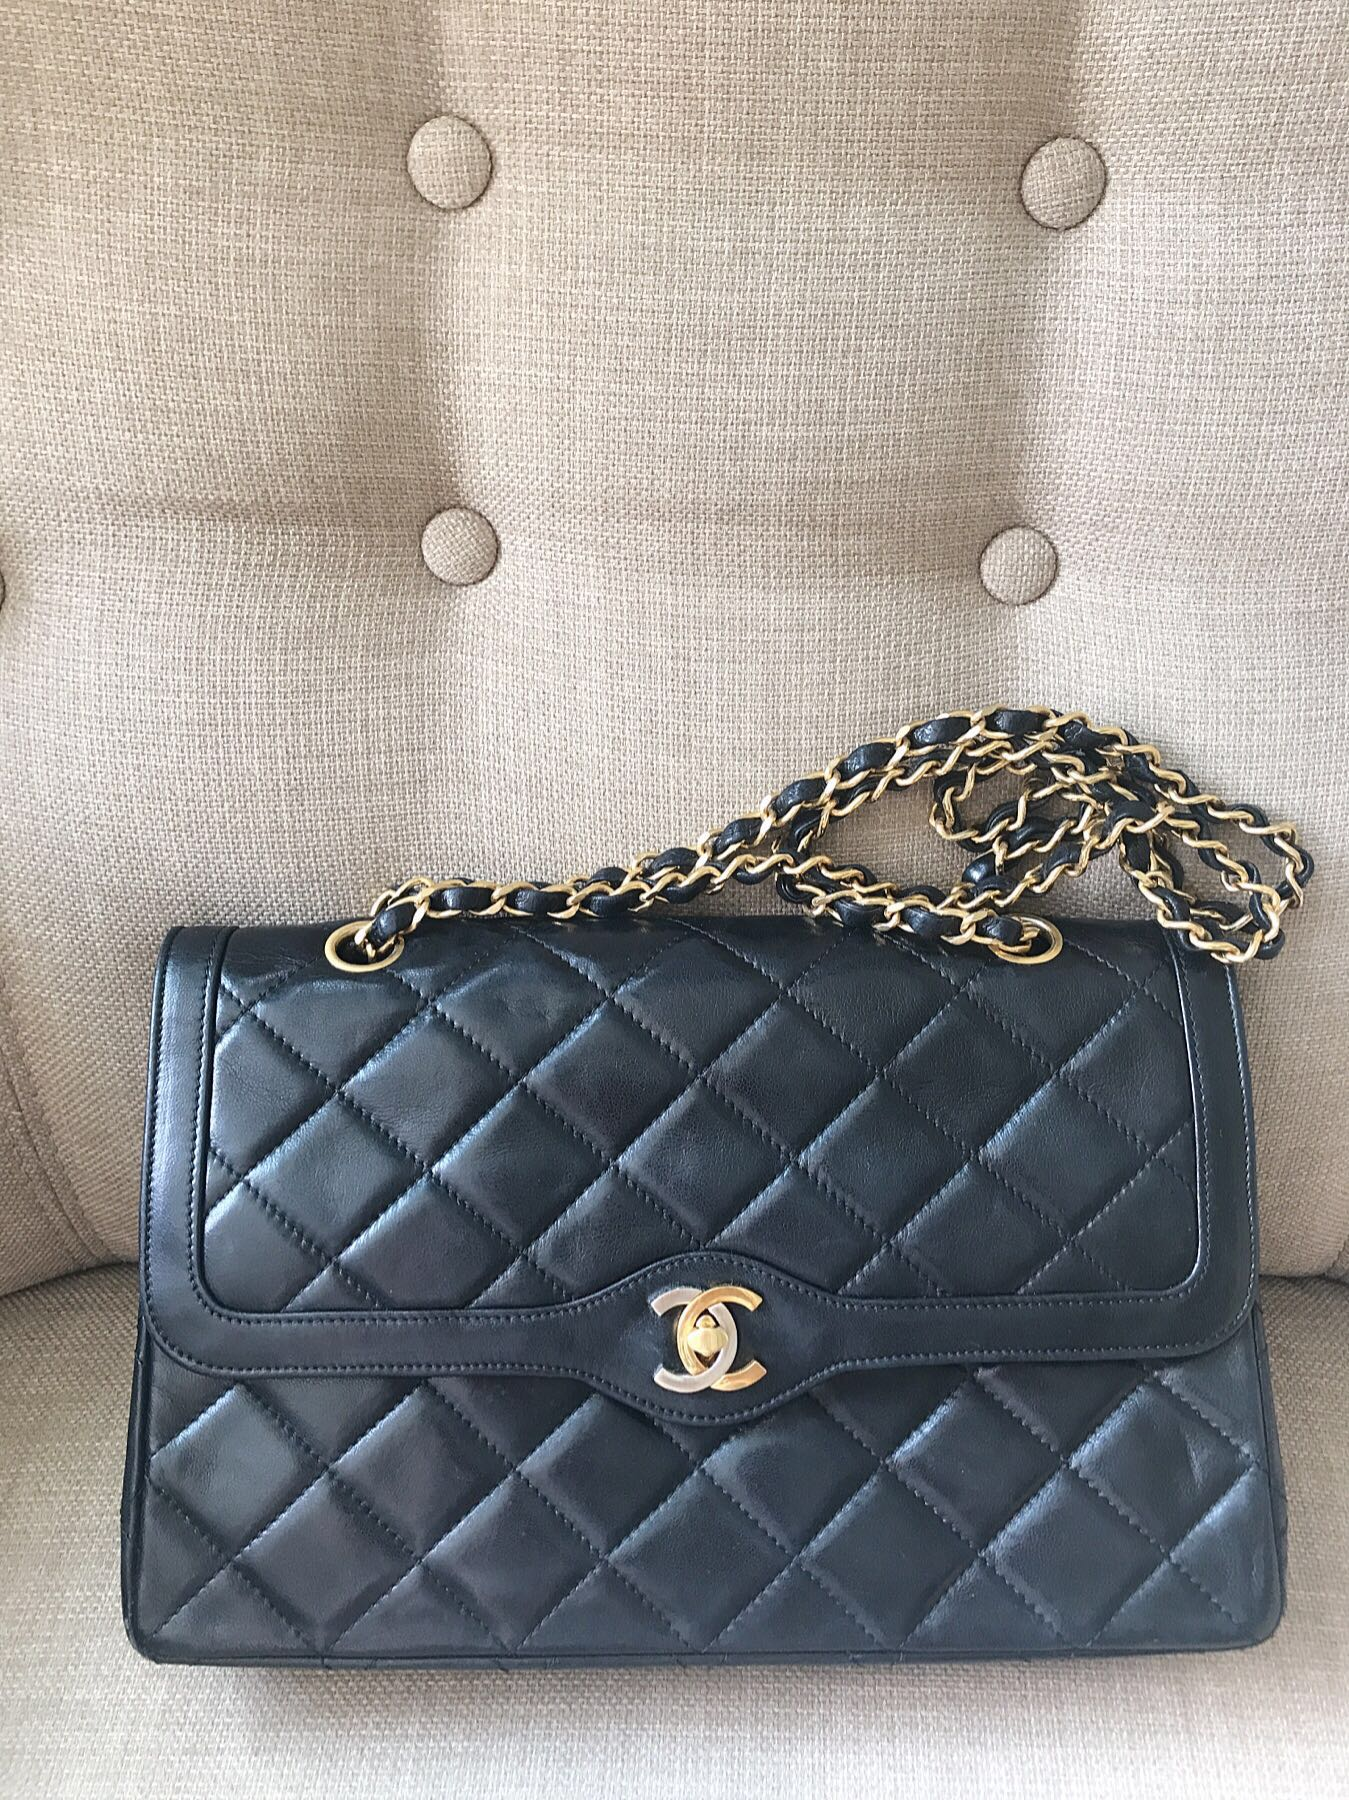 b23a12b56cd4 Chanel Black Quilted Lambskin Vintage Medium Double Sided Classic Flap Bag.  photo photo .